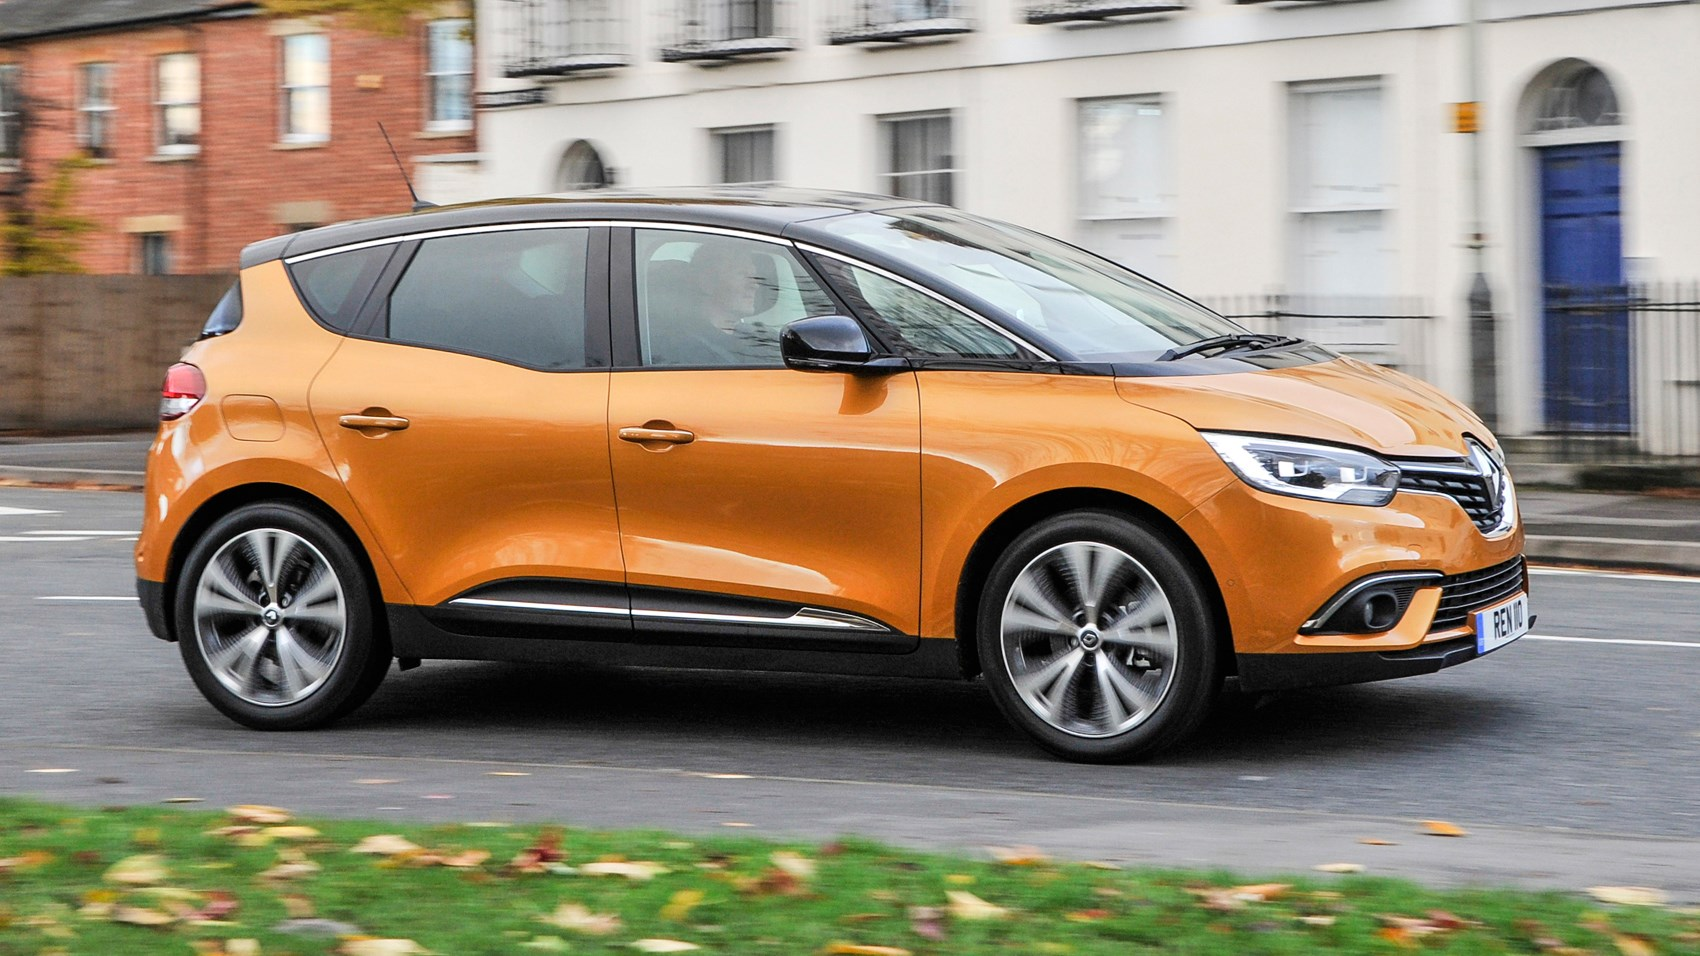 renault scenic dynamique s nav dci 110 2016 review by car magazine. Black Bedroom Furniture Sets. Home Design Ideas